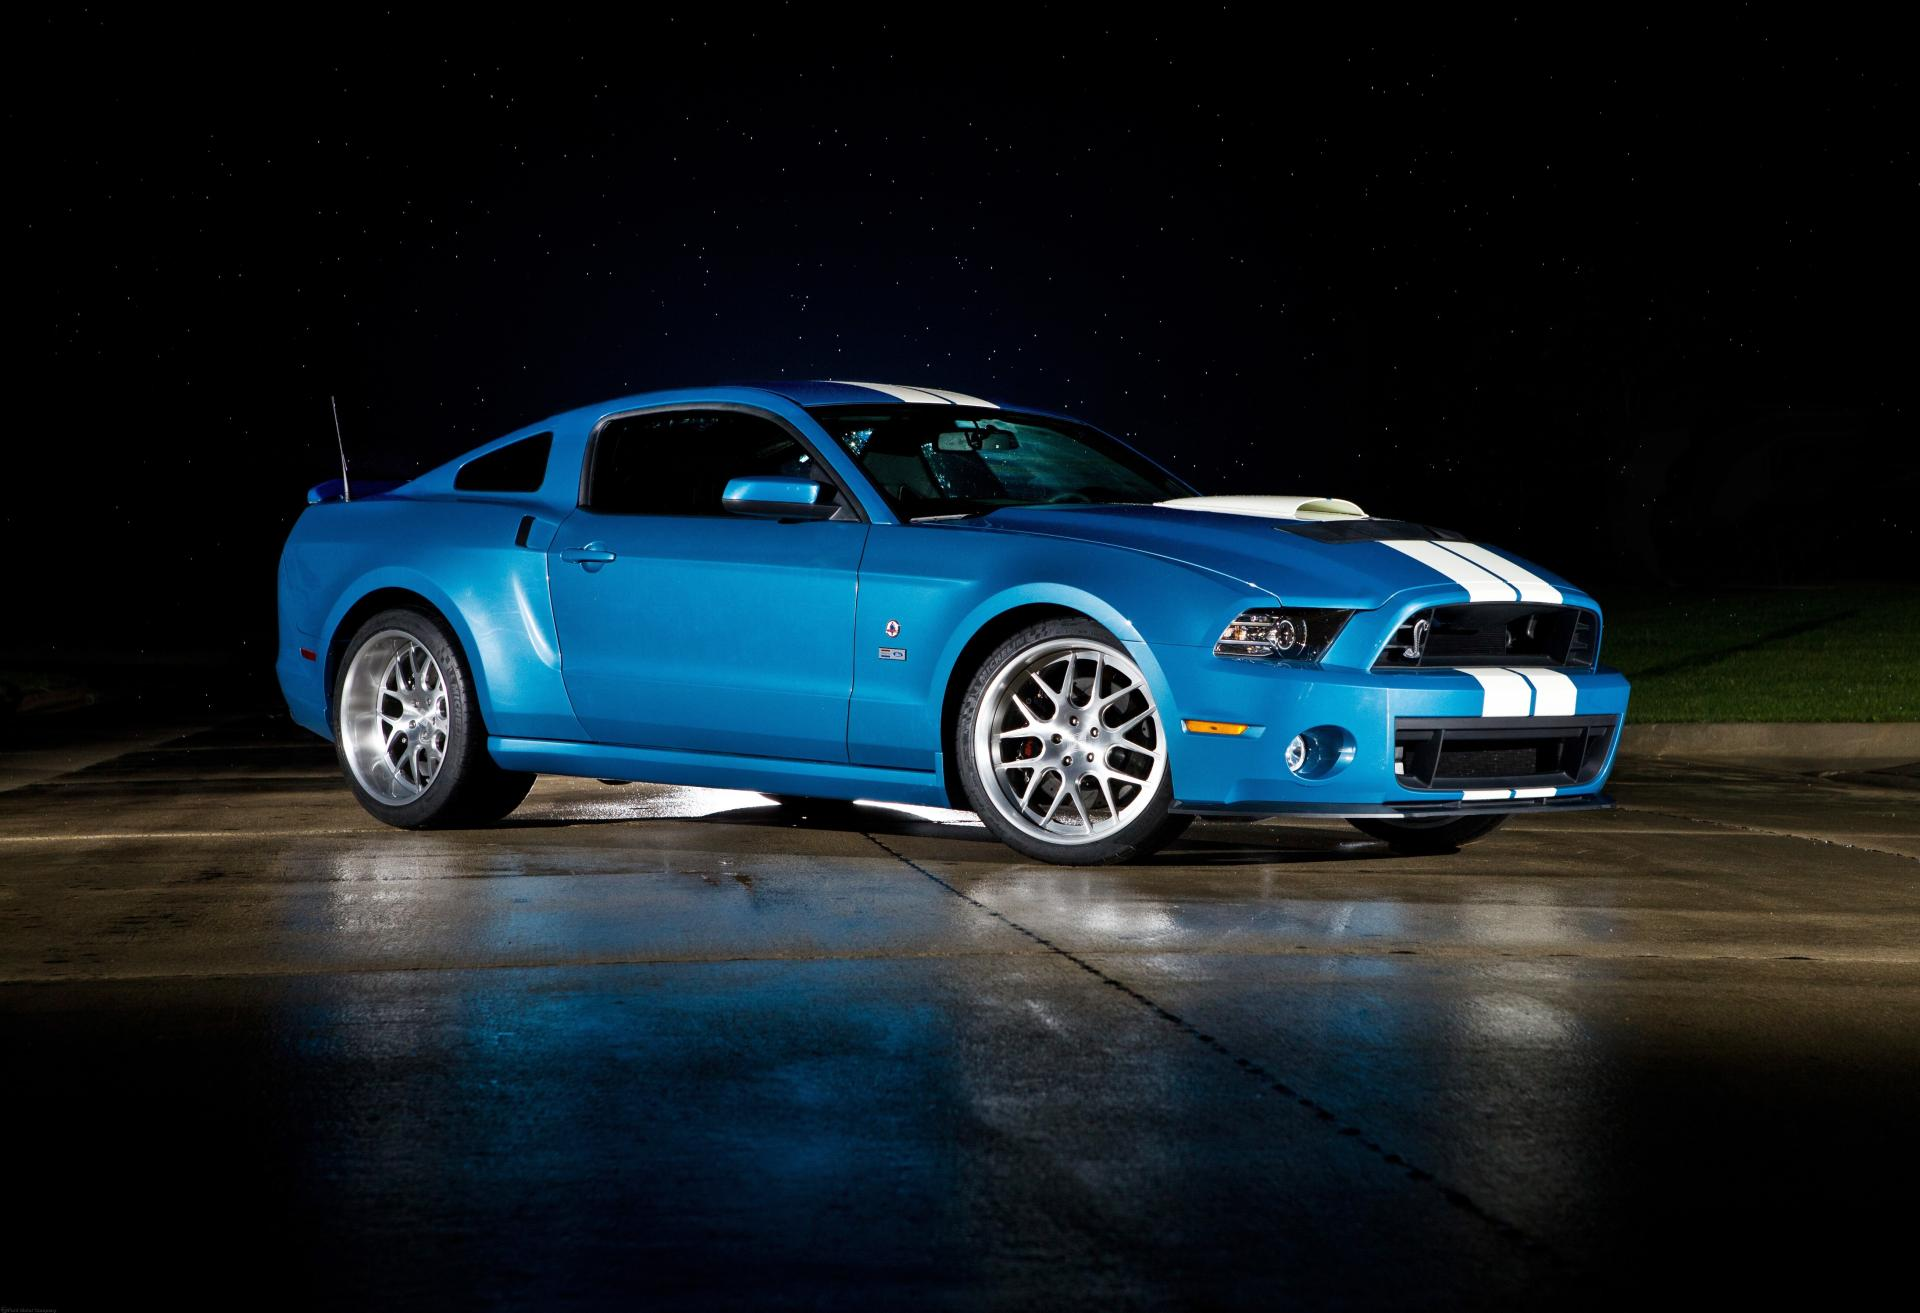 2012 Ford Shelby Mustange GT500 Cobra  conceptcarzcom